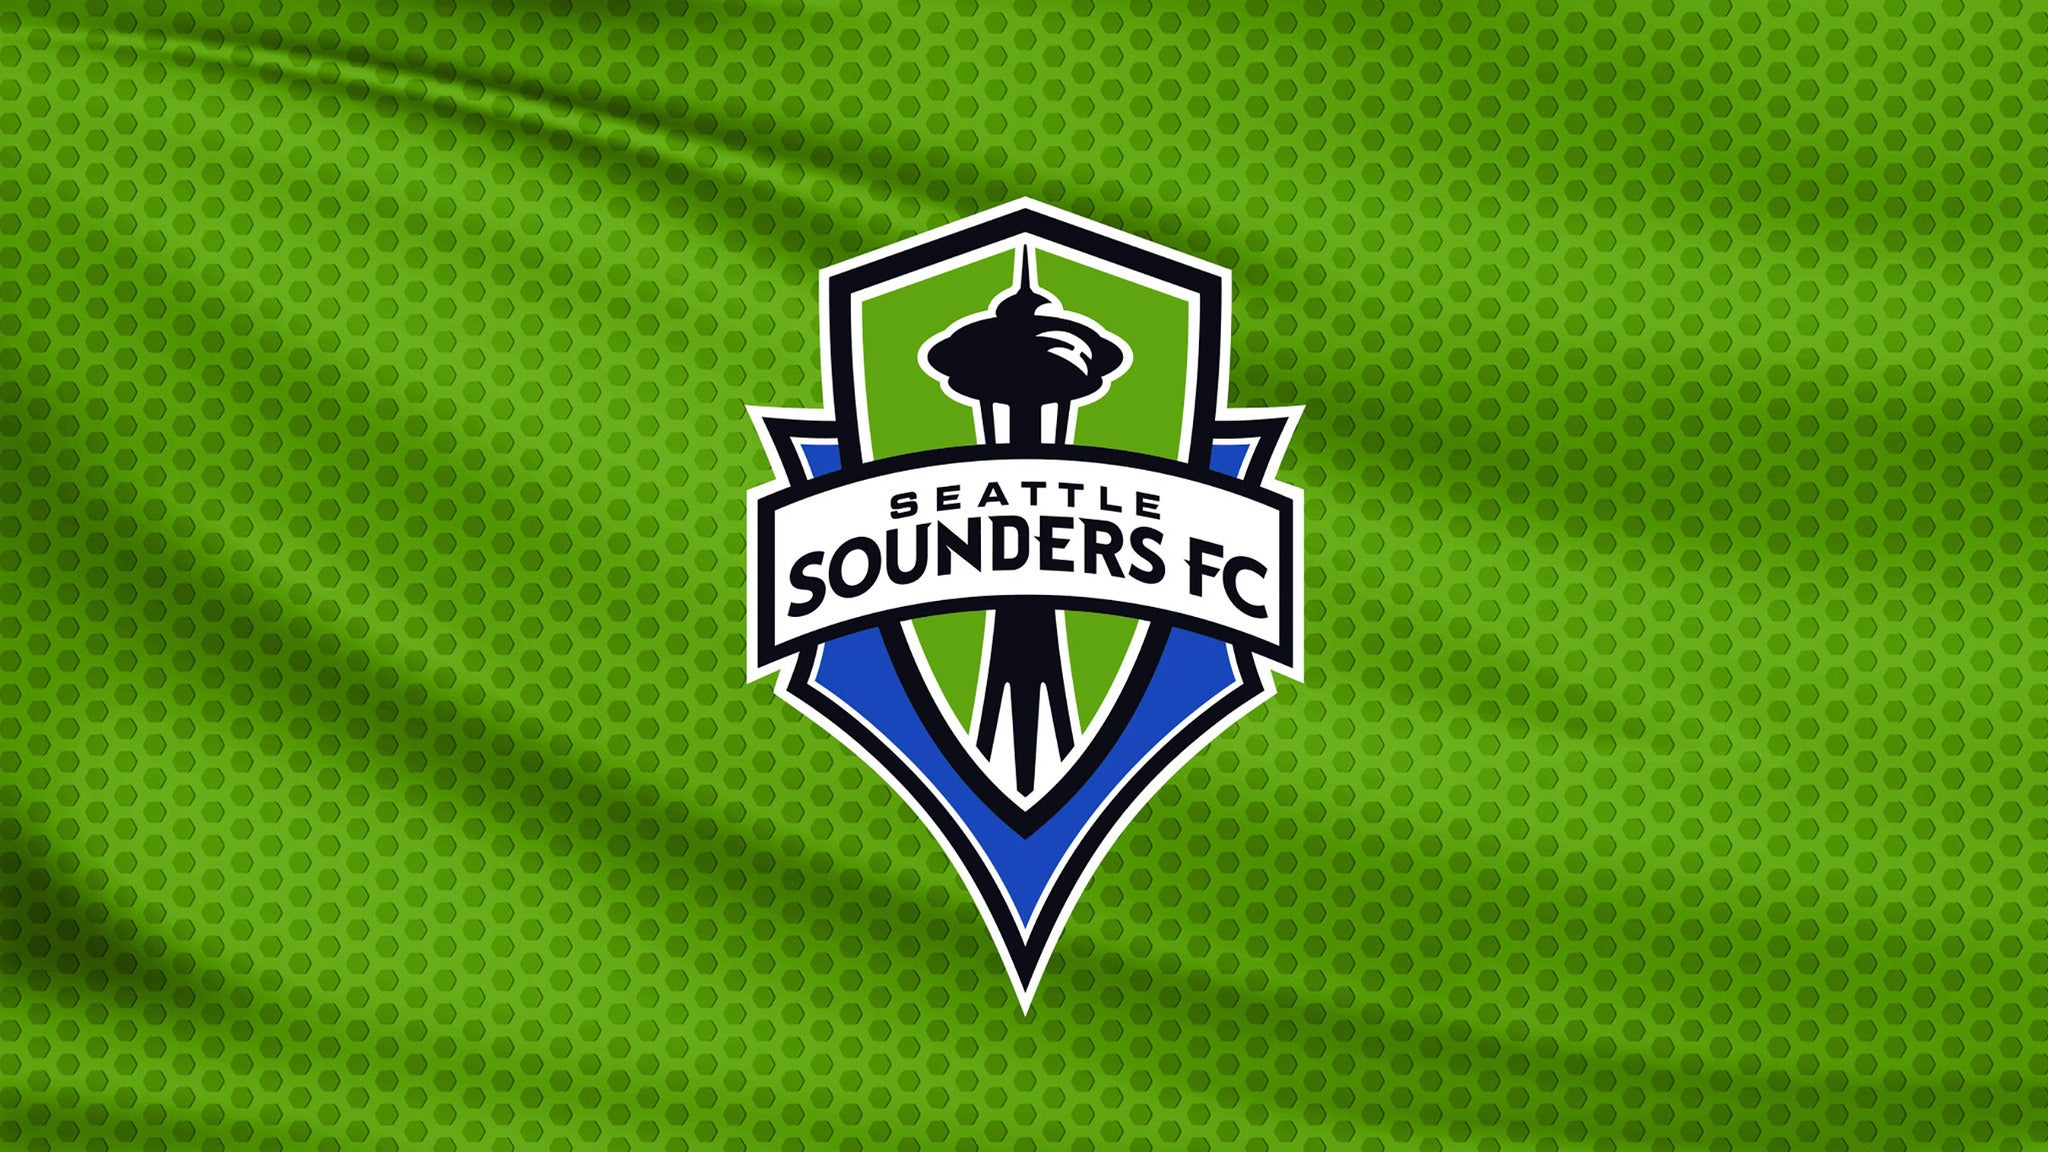 Seattle Sounders FC vs. Tigres UANL presale passcode for early tickets in Seattle